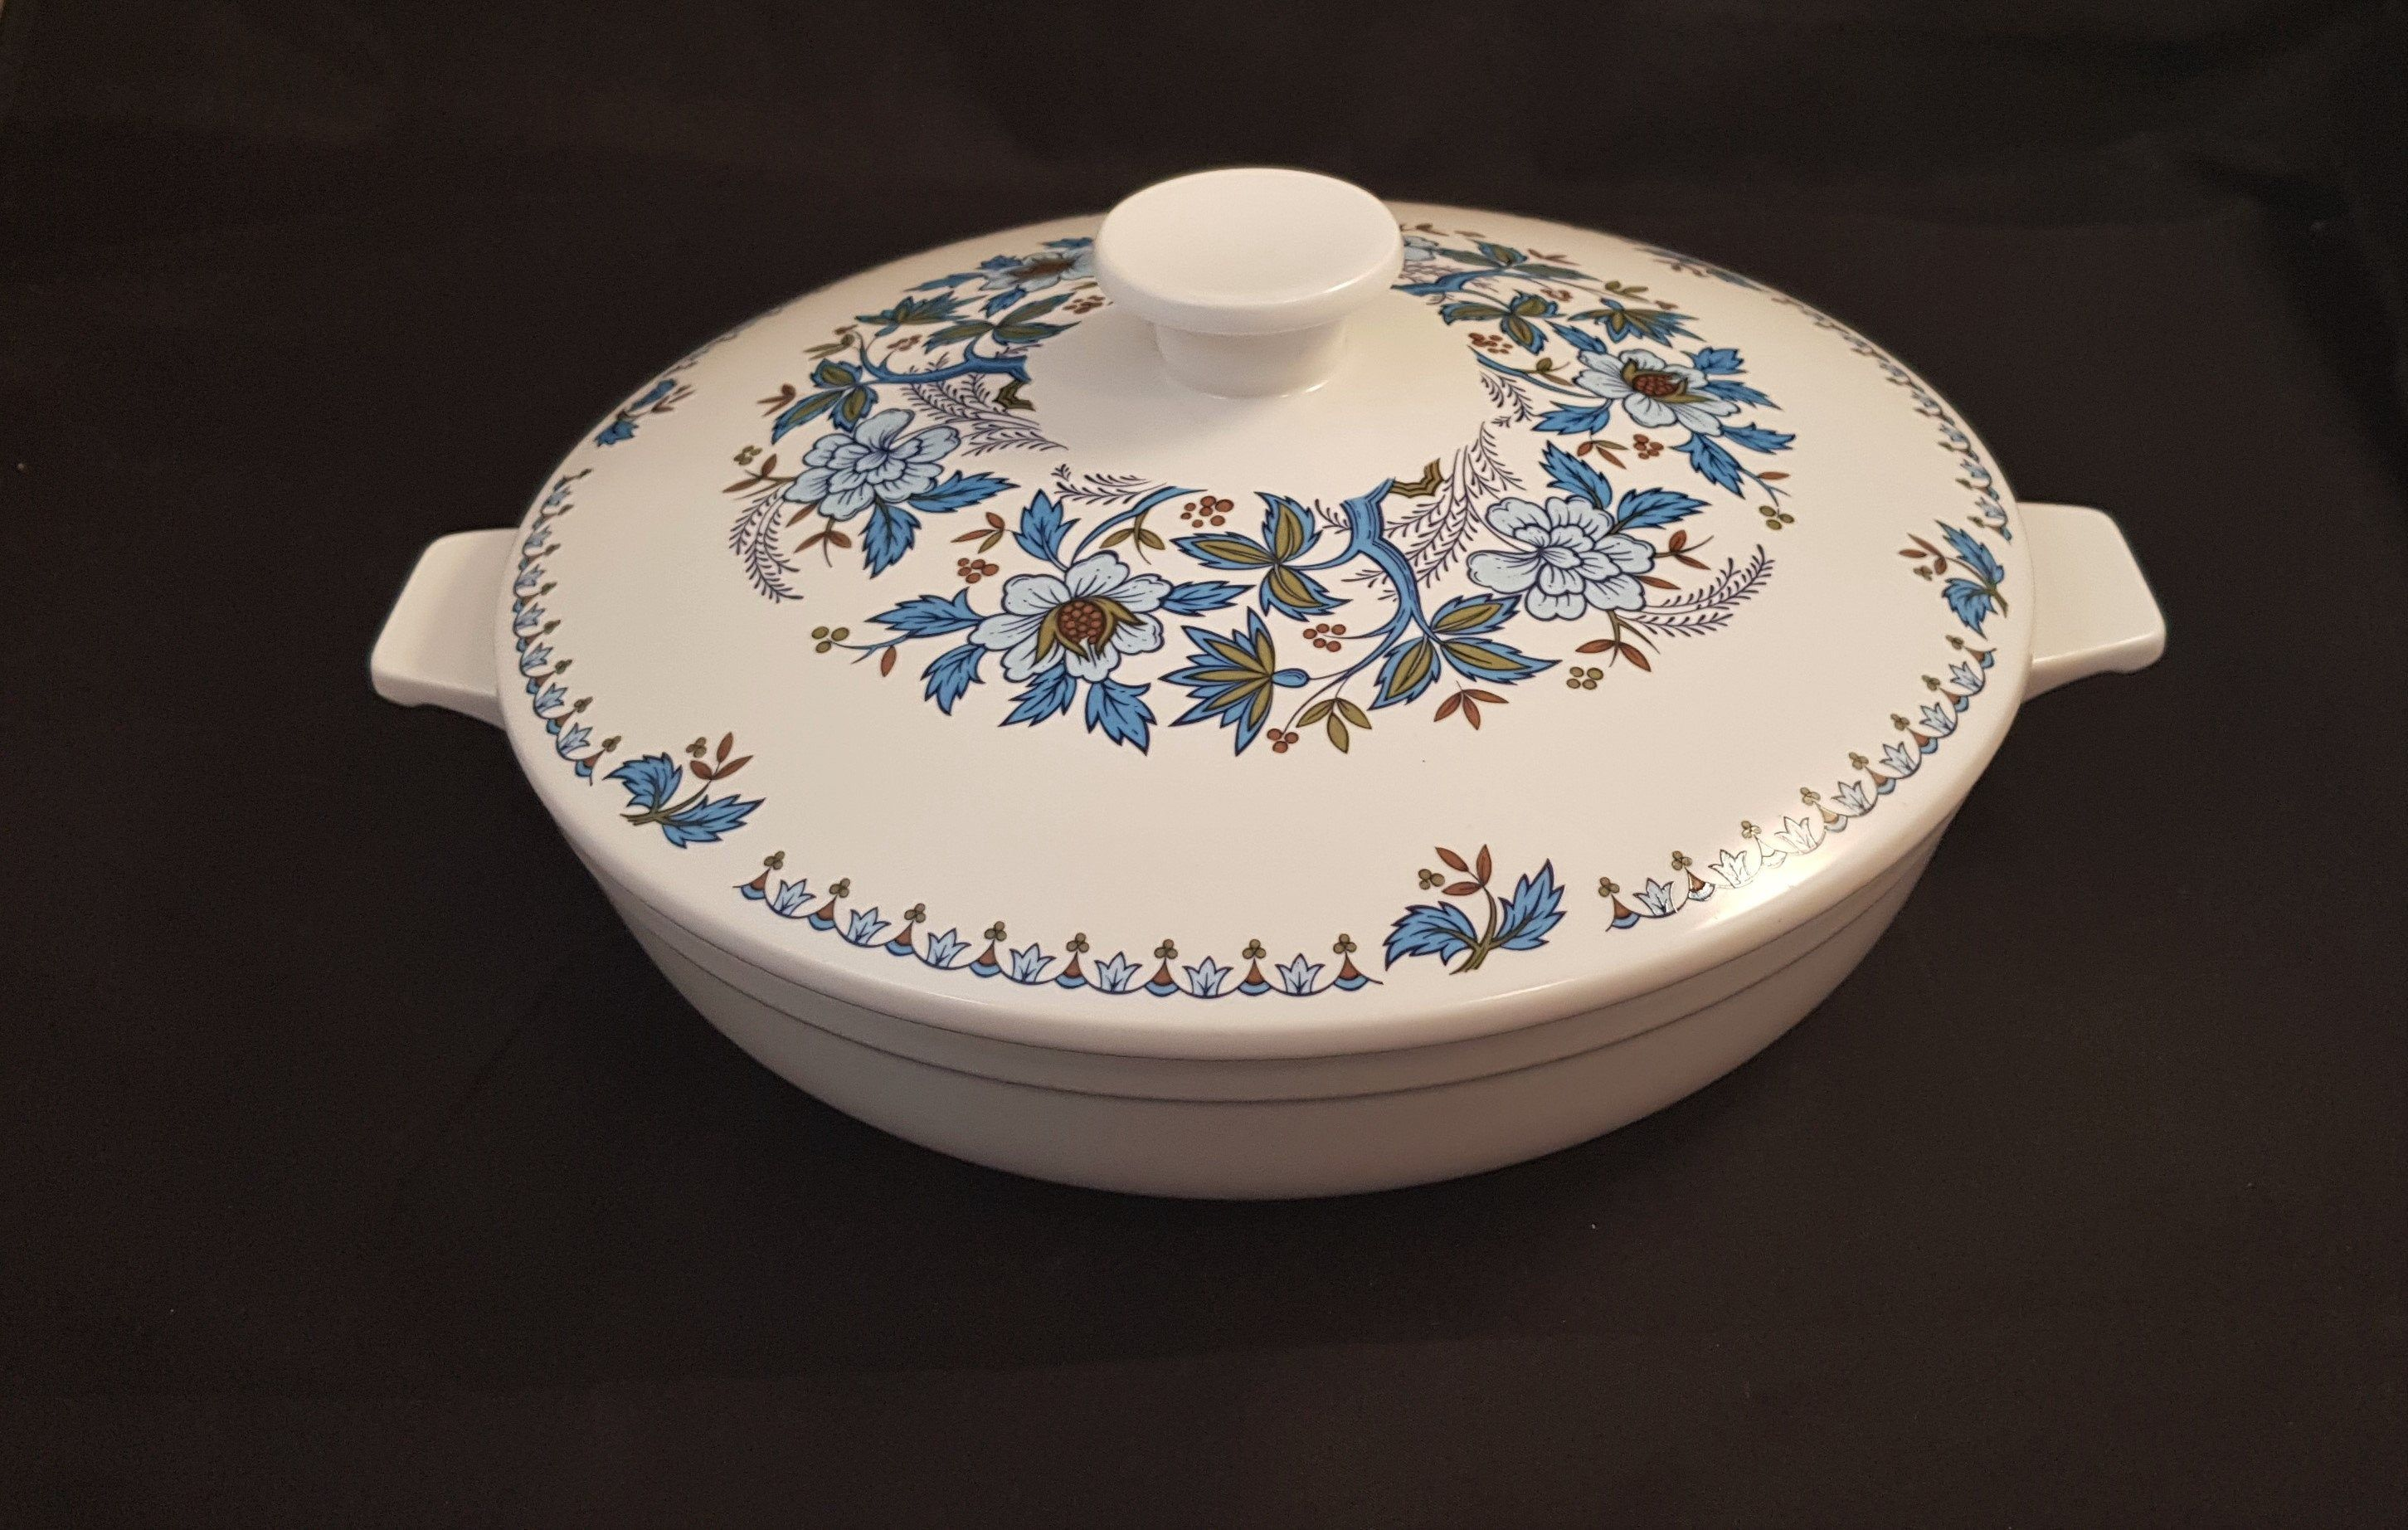 Excited to share the latest addition to my shop Vintage Japanese Noritake Progression Blue Moon China Casserole Dish Lidded Blue And White Floral Tureen Dish Japan 60s  S...